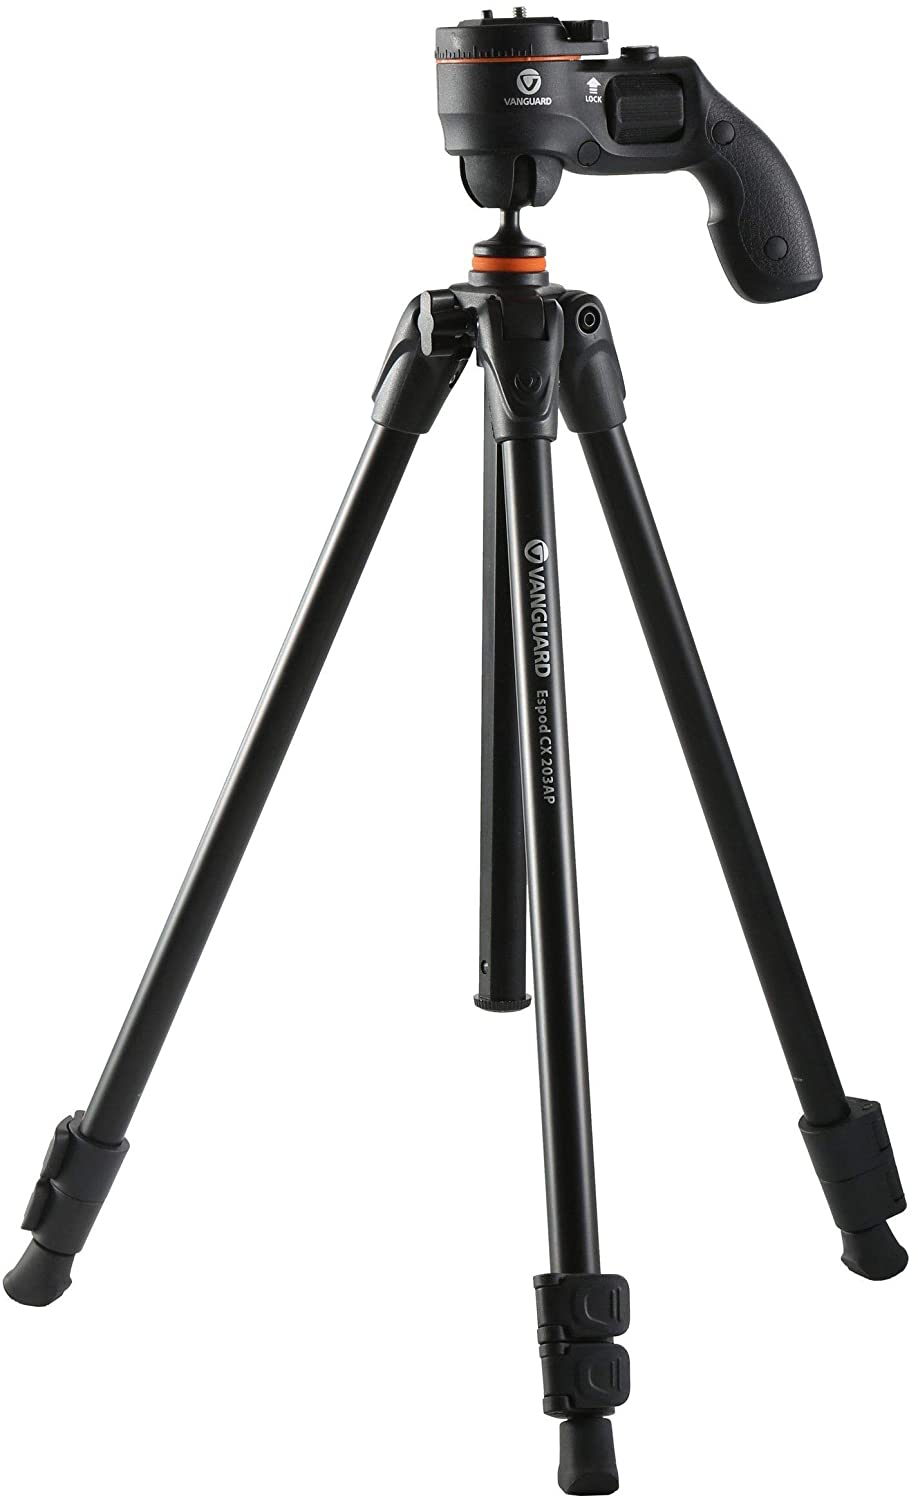 Vanguard Aluminium Tripod Espod CX 203 AGH With PISTOL GRIP BALL HEAD